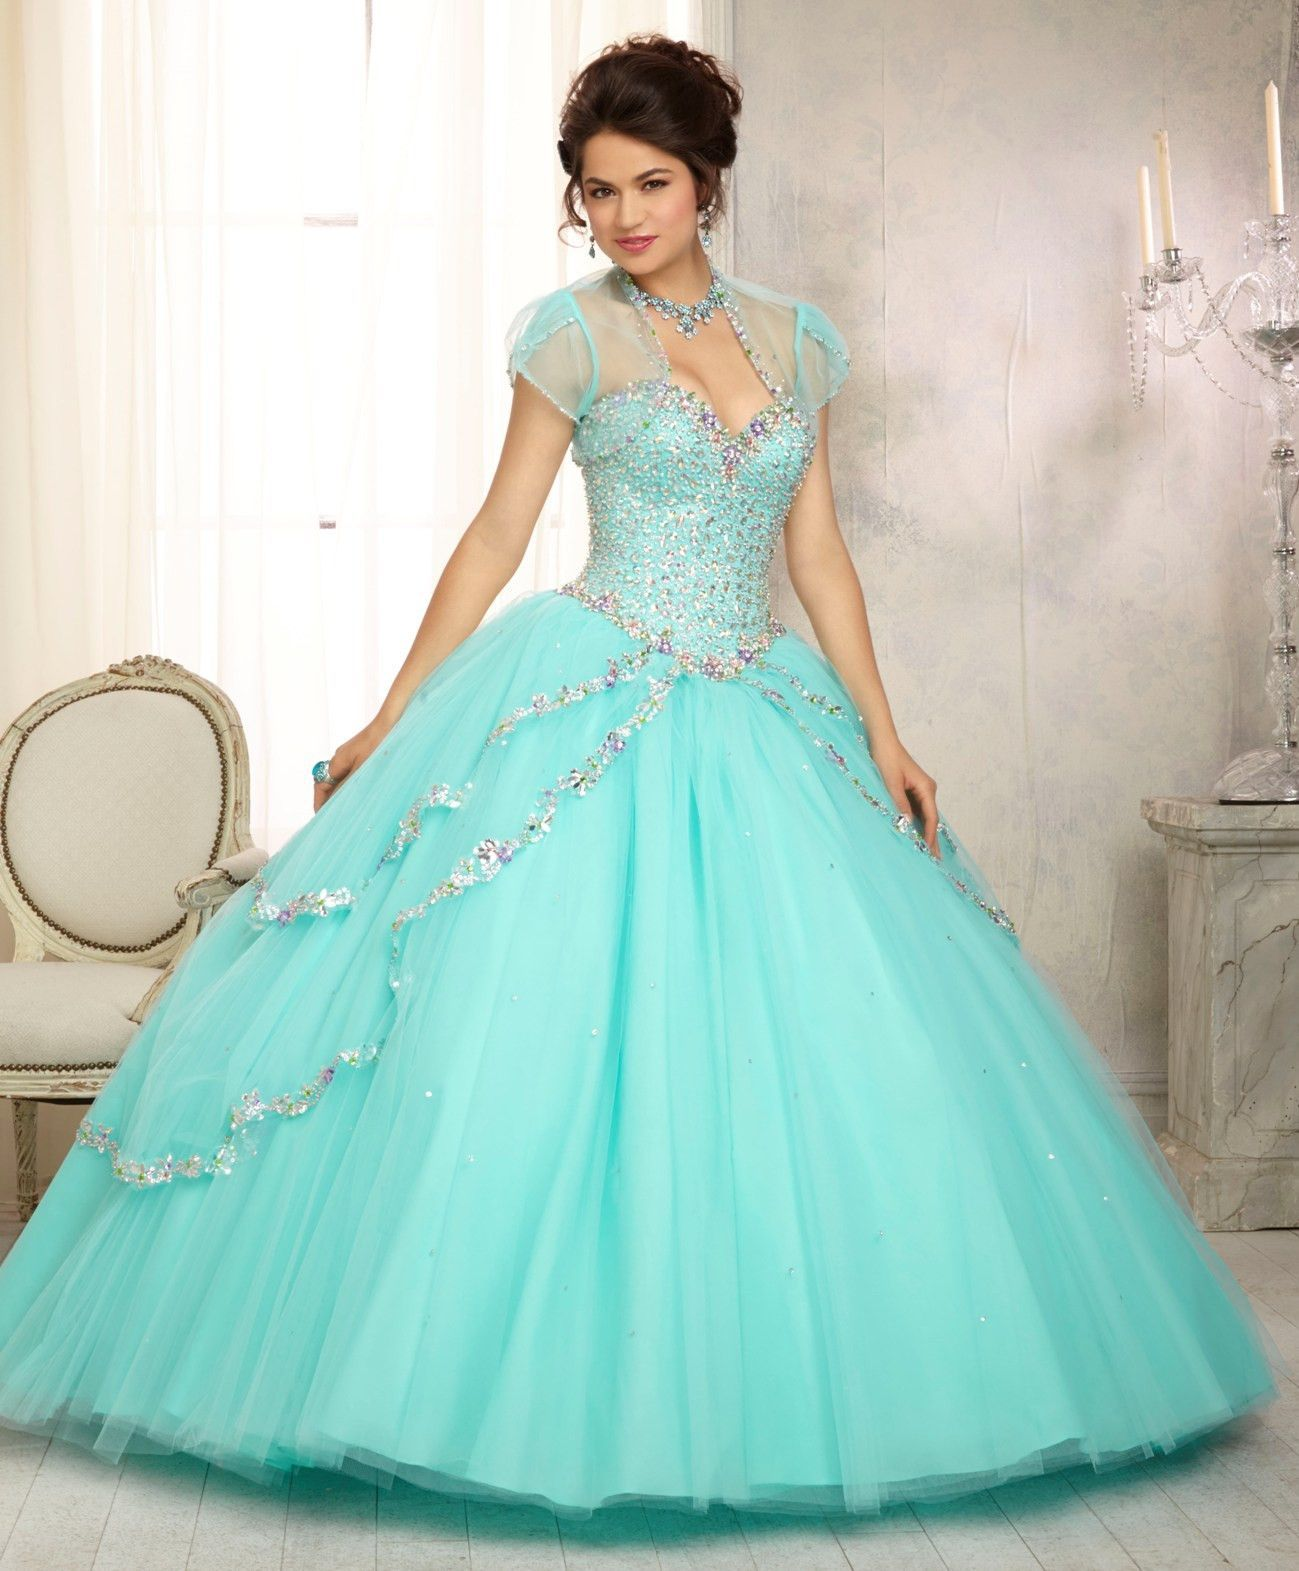 Mori lee quinceanera dress style outfits pinterest sweet